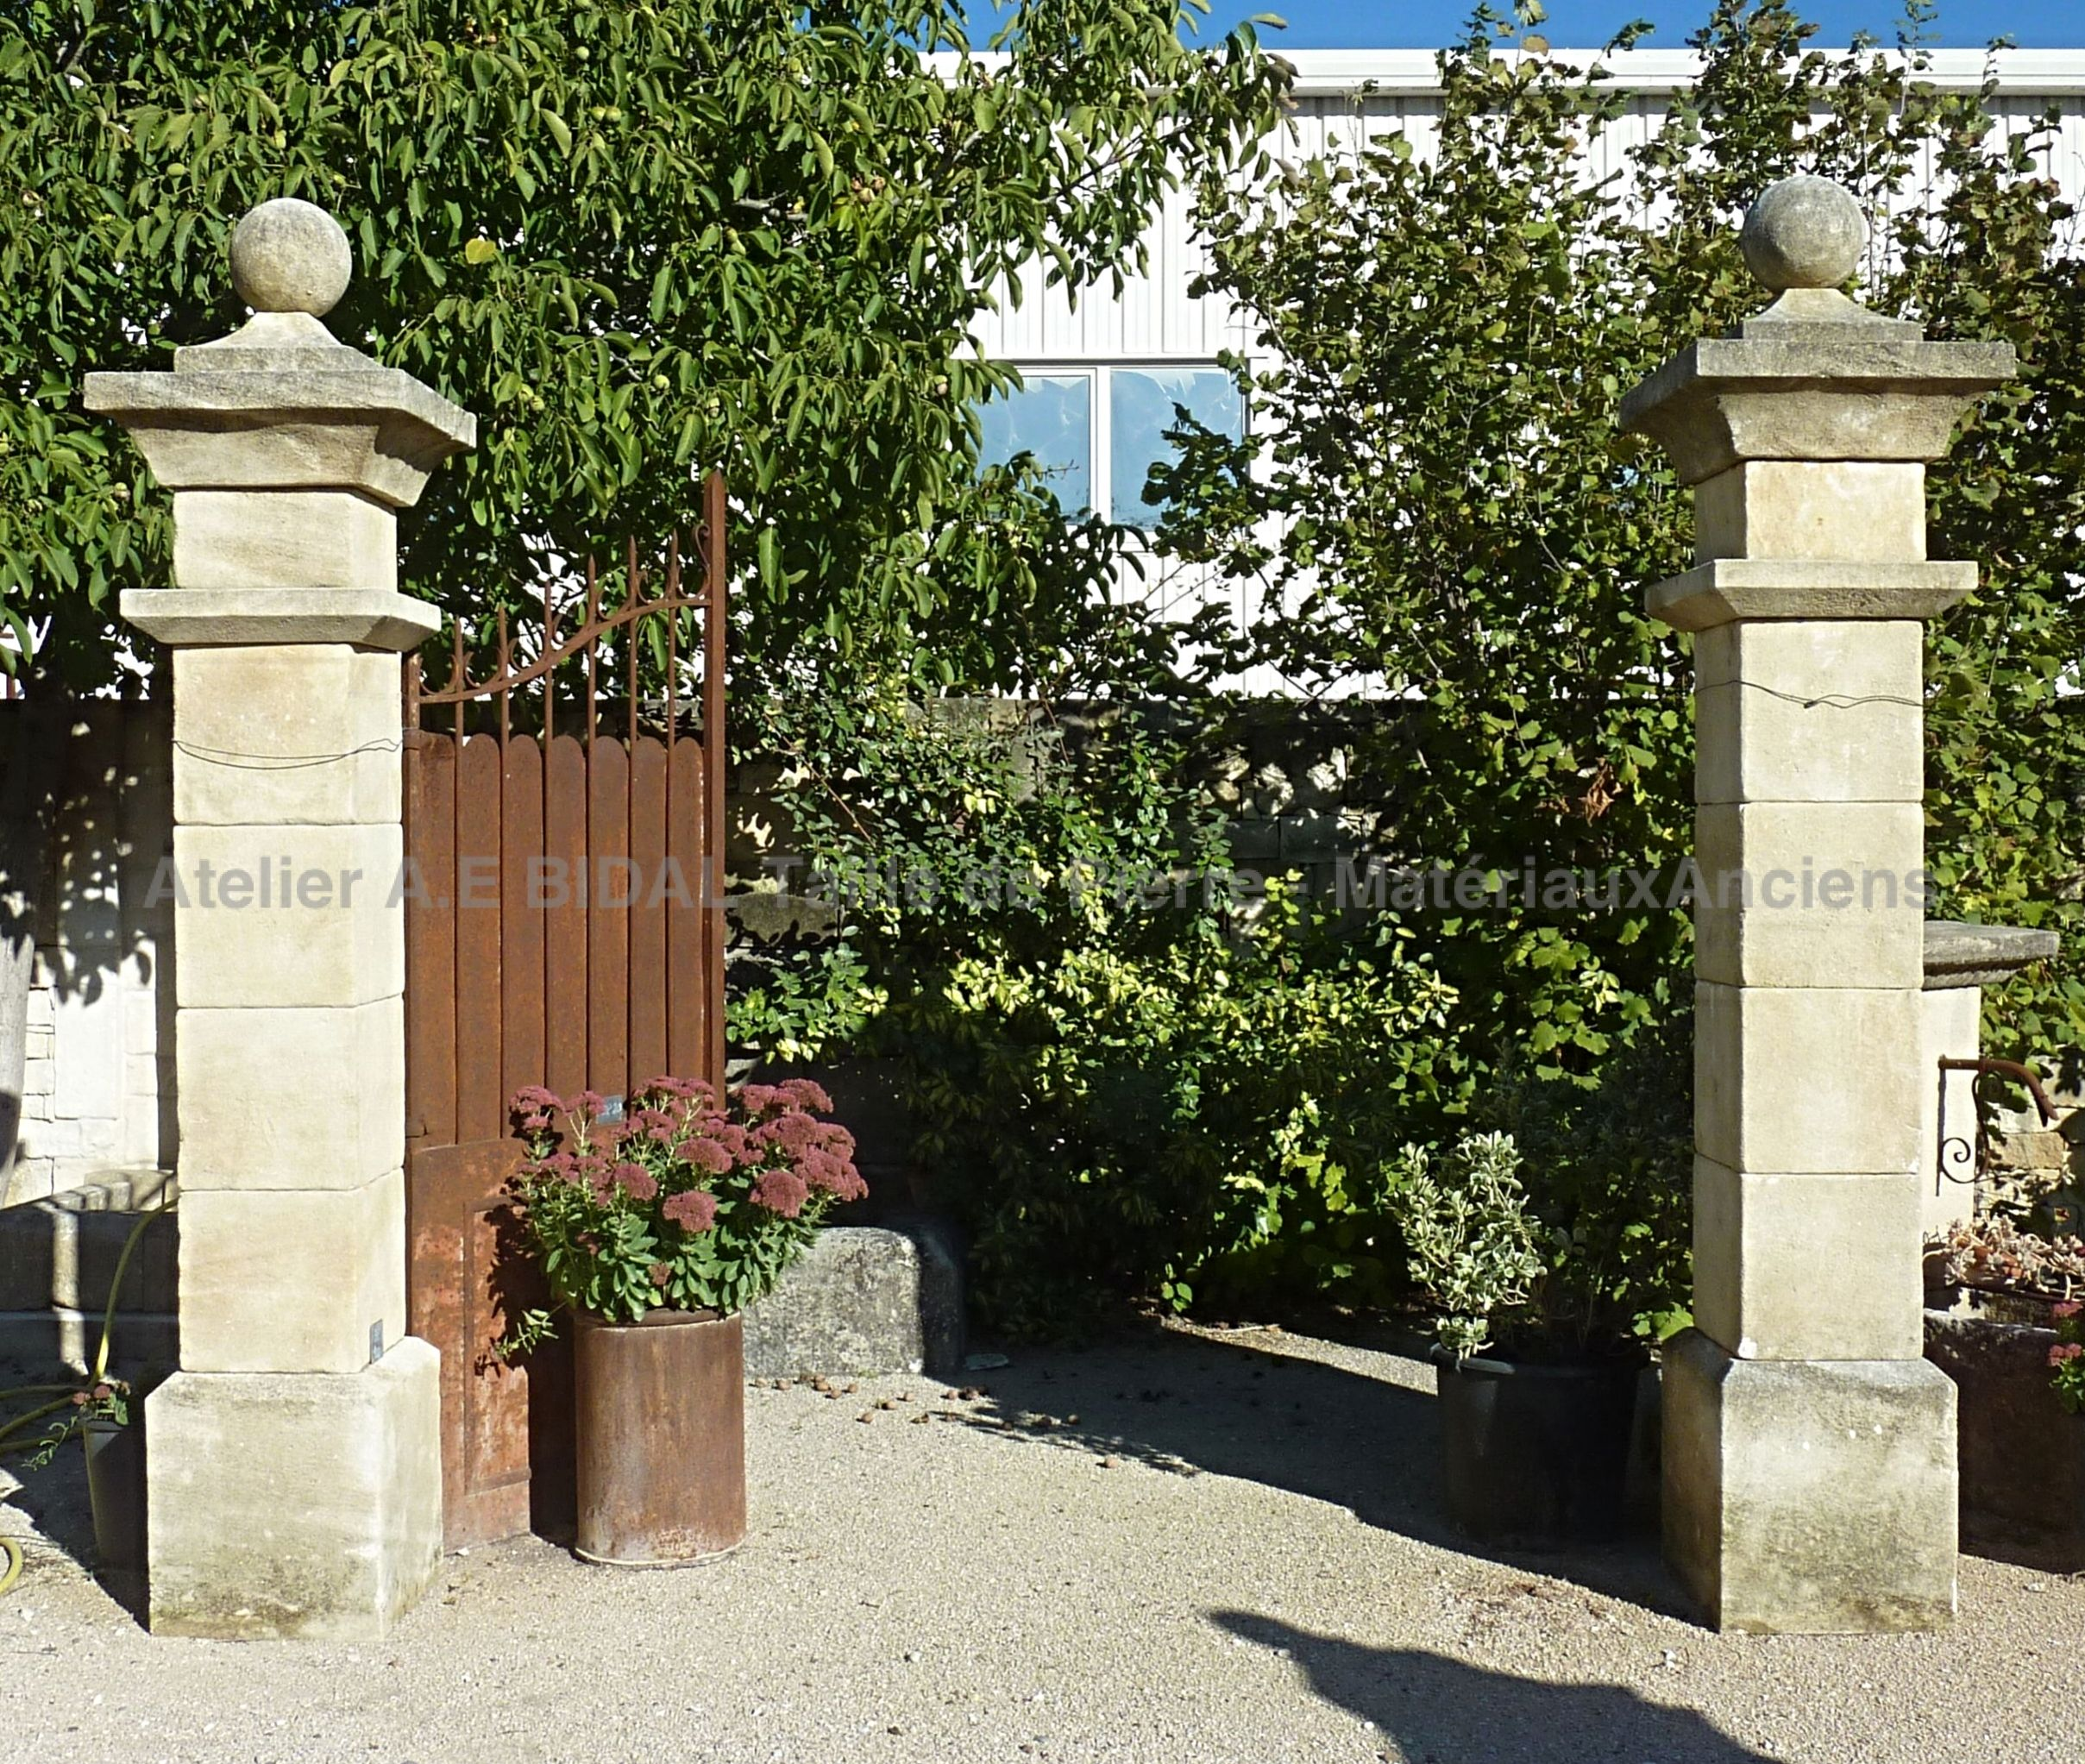 BA100 - Pair of stone pillars for gate or entrance - in natural limestone from Provence